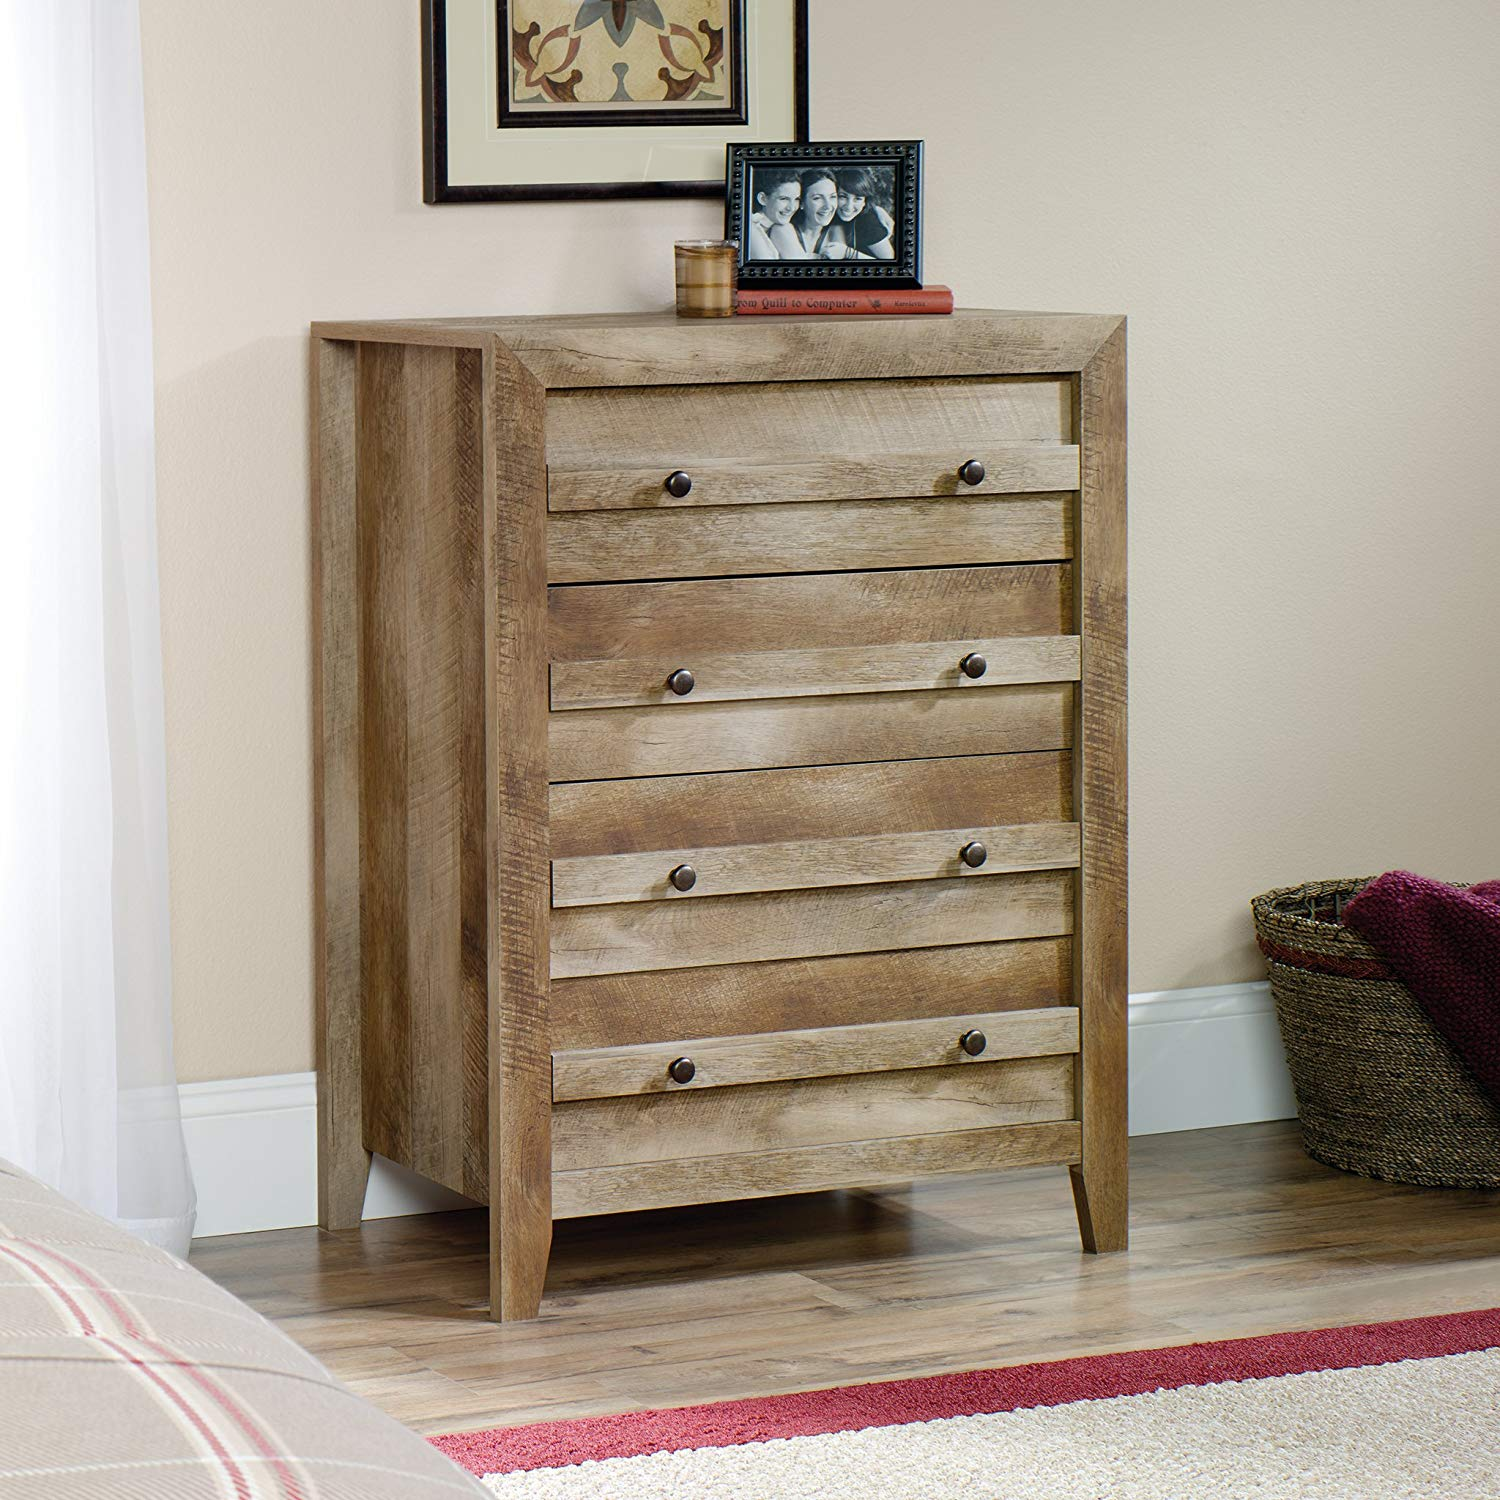 Sauder Bedroom Chest Of Drawers